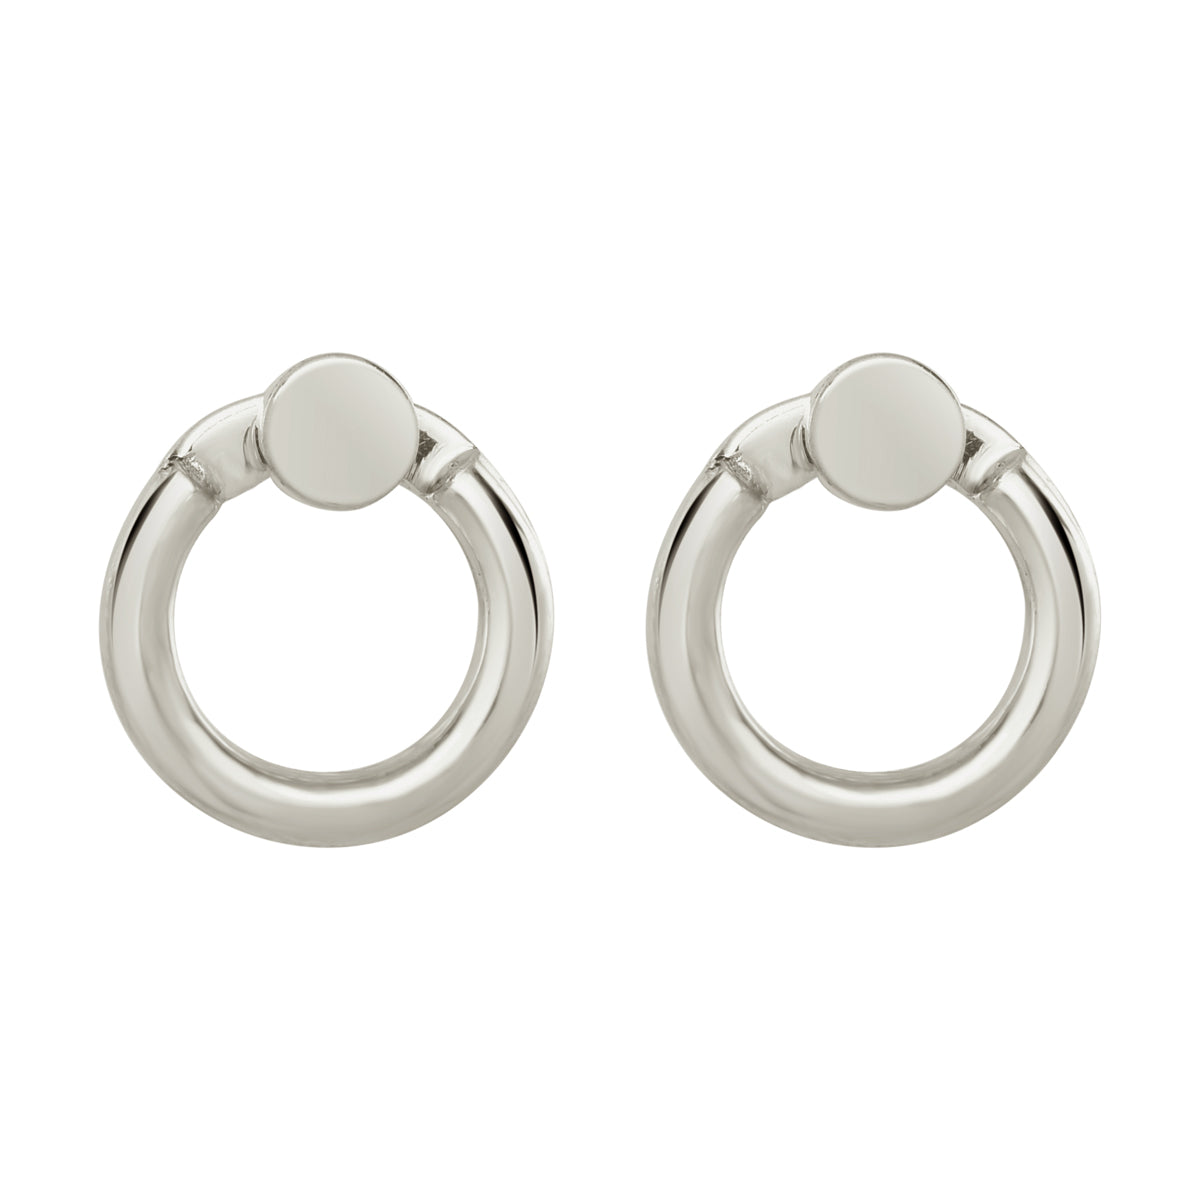 Silver Mini Eclipse Earrings - René Habie